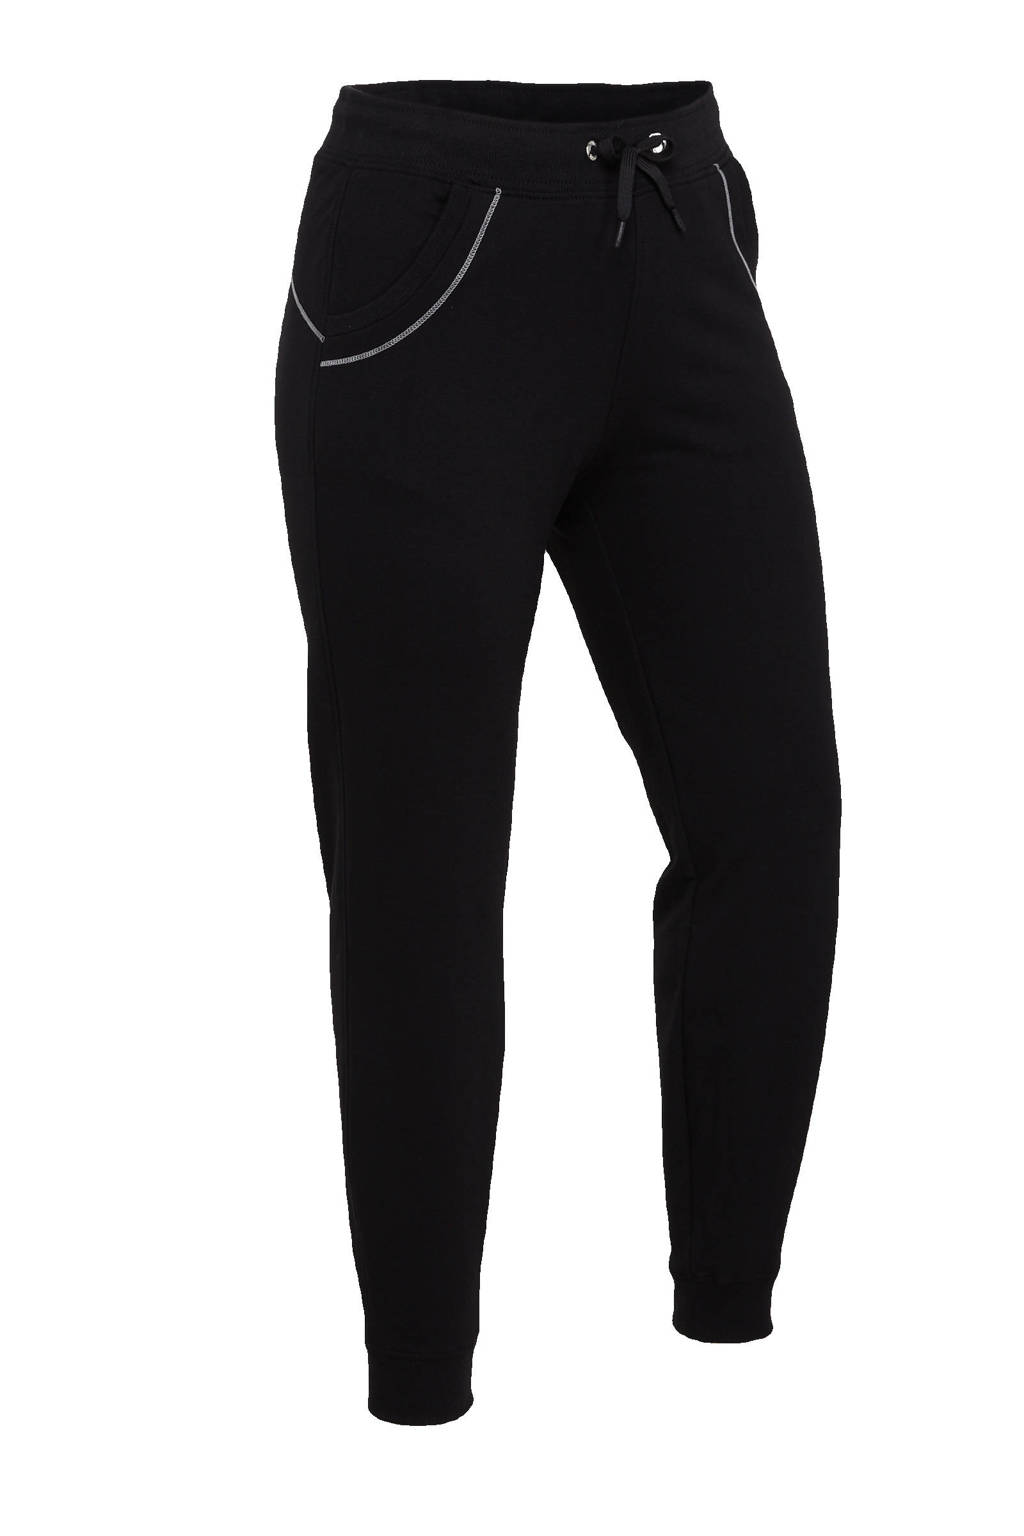 Sjeng Sports Plus Size trainingsbroek Love zwart, Zwart